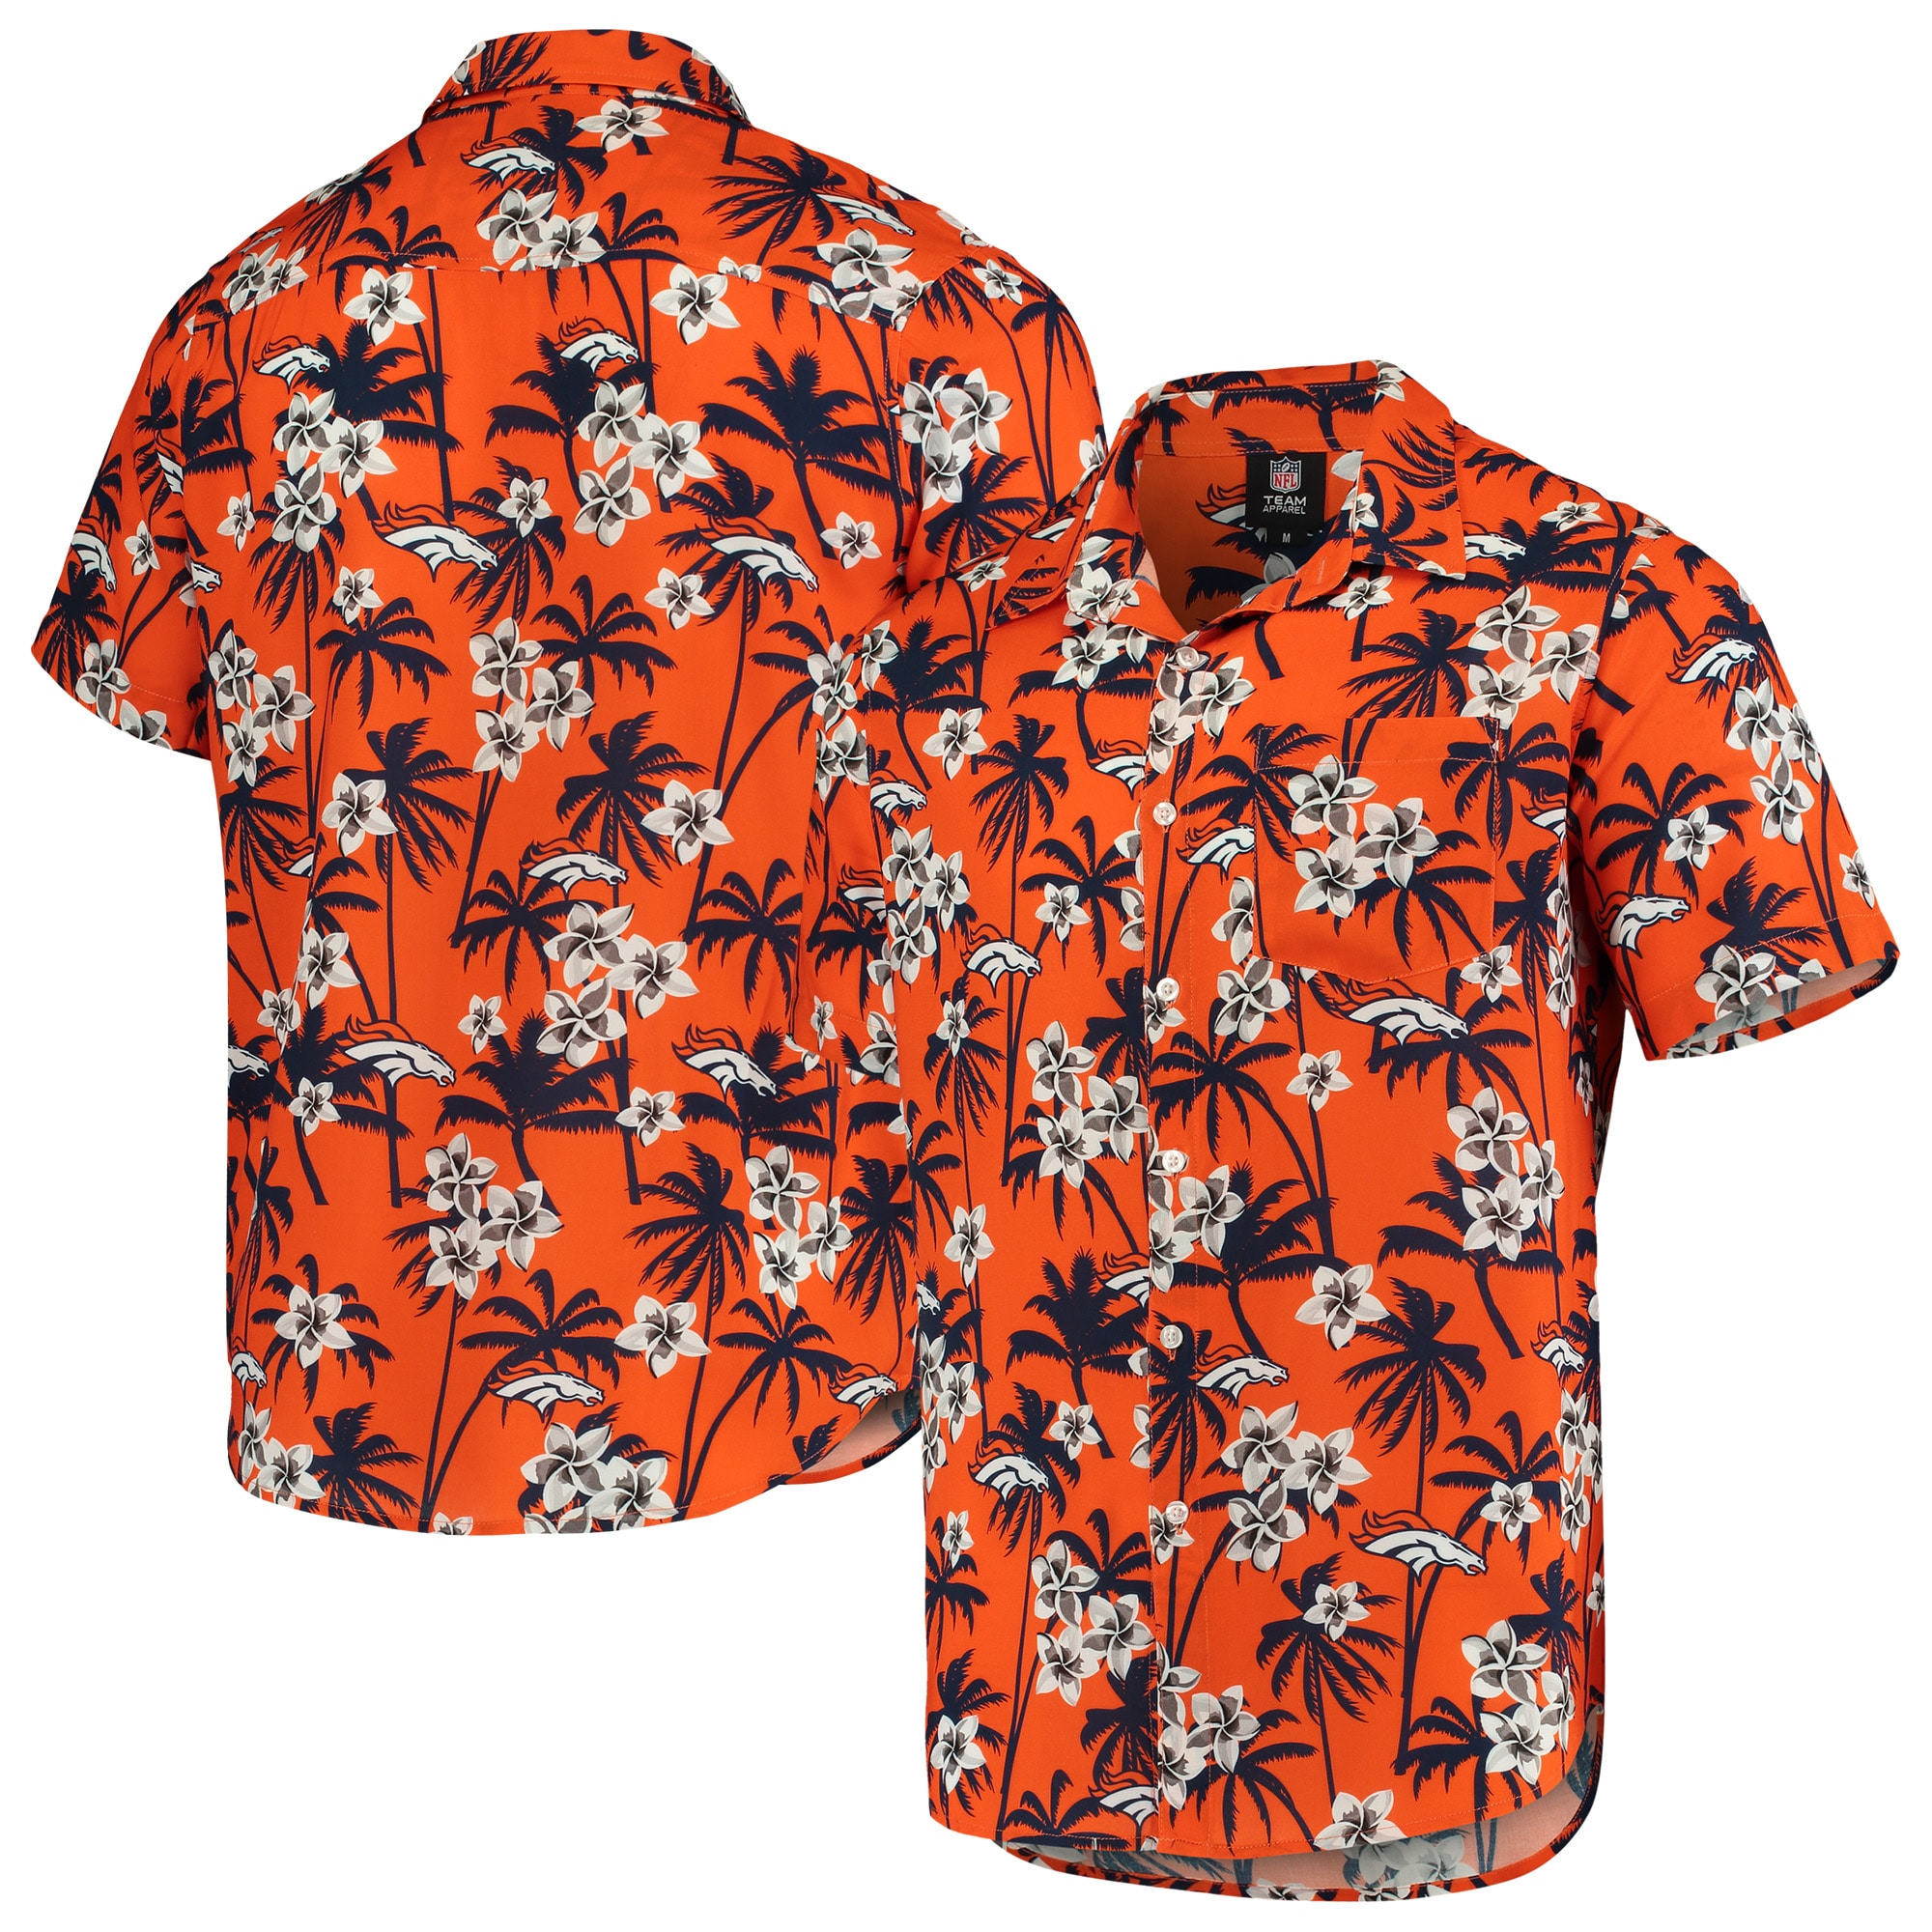 Denver Broncos Floral Woven Button-Up Shirt - Orange